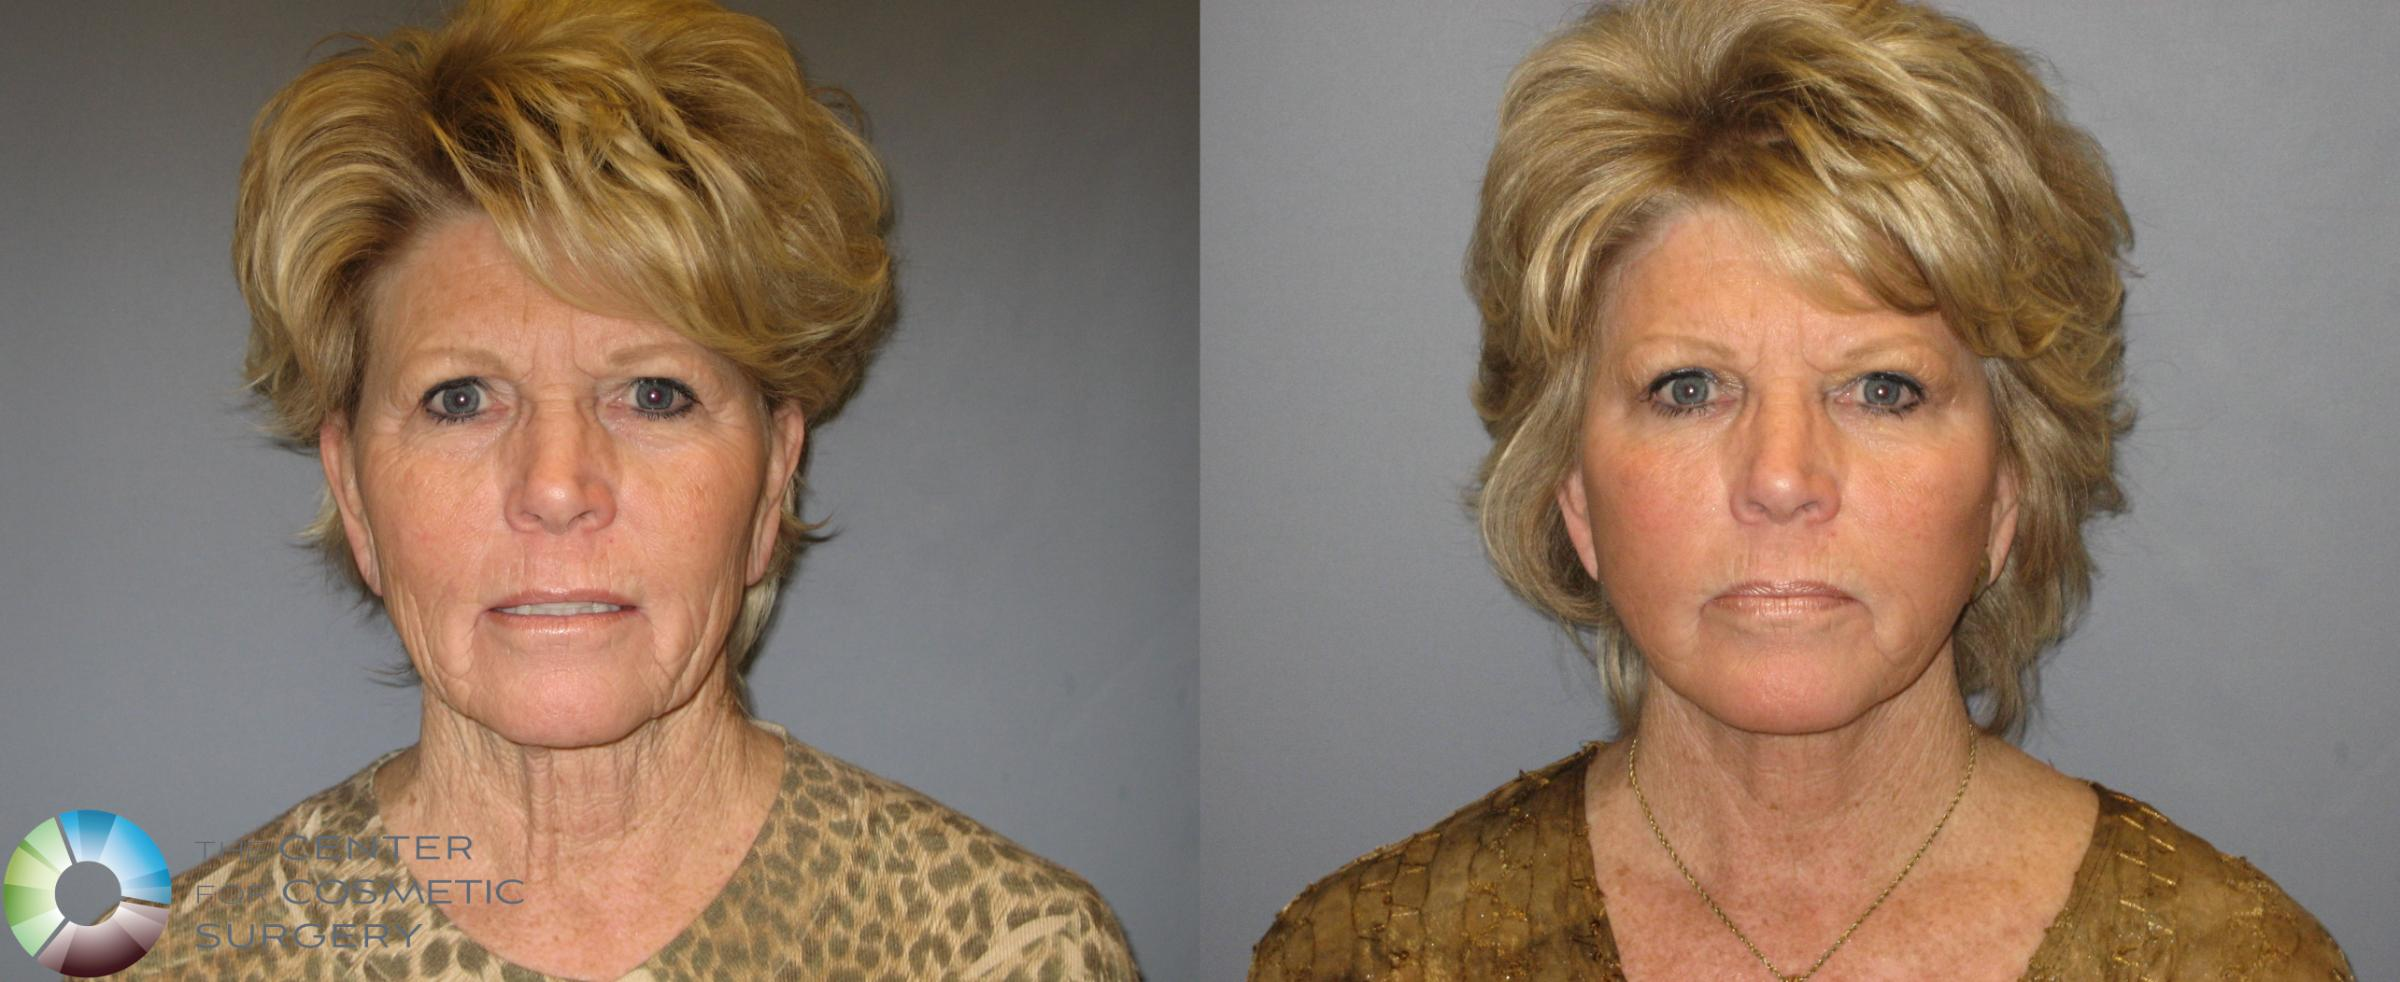 Eyelid Lift Case 334 Before & After View #1 | Golden, CO | The Center for Cosmetic Surgery